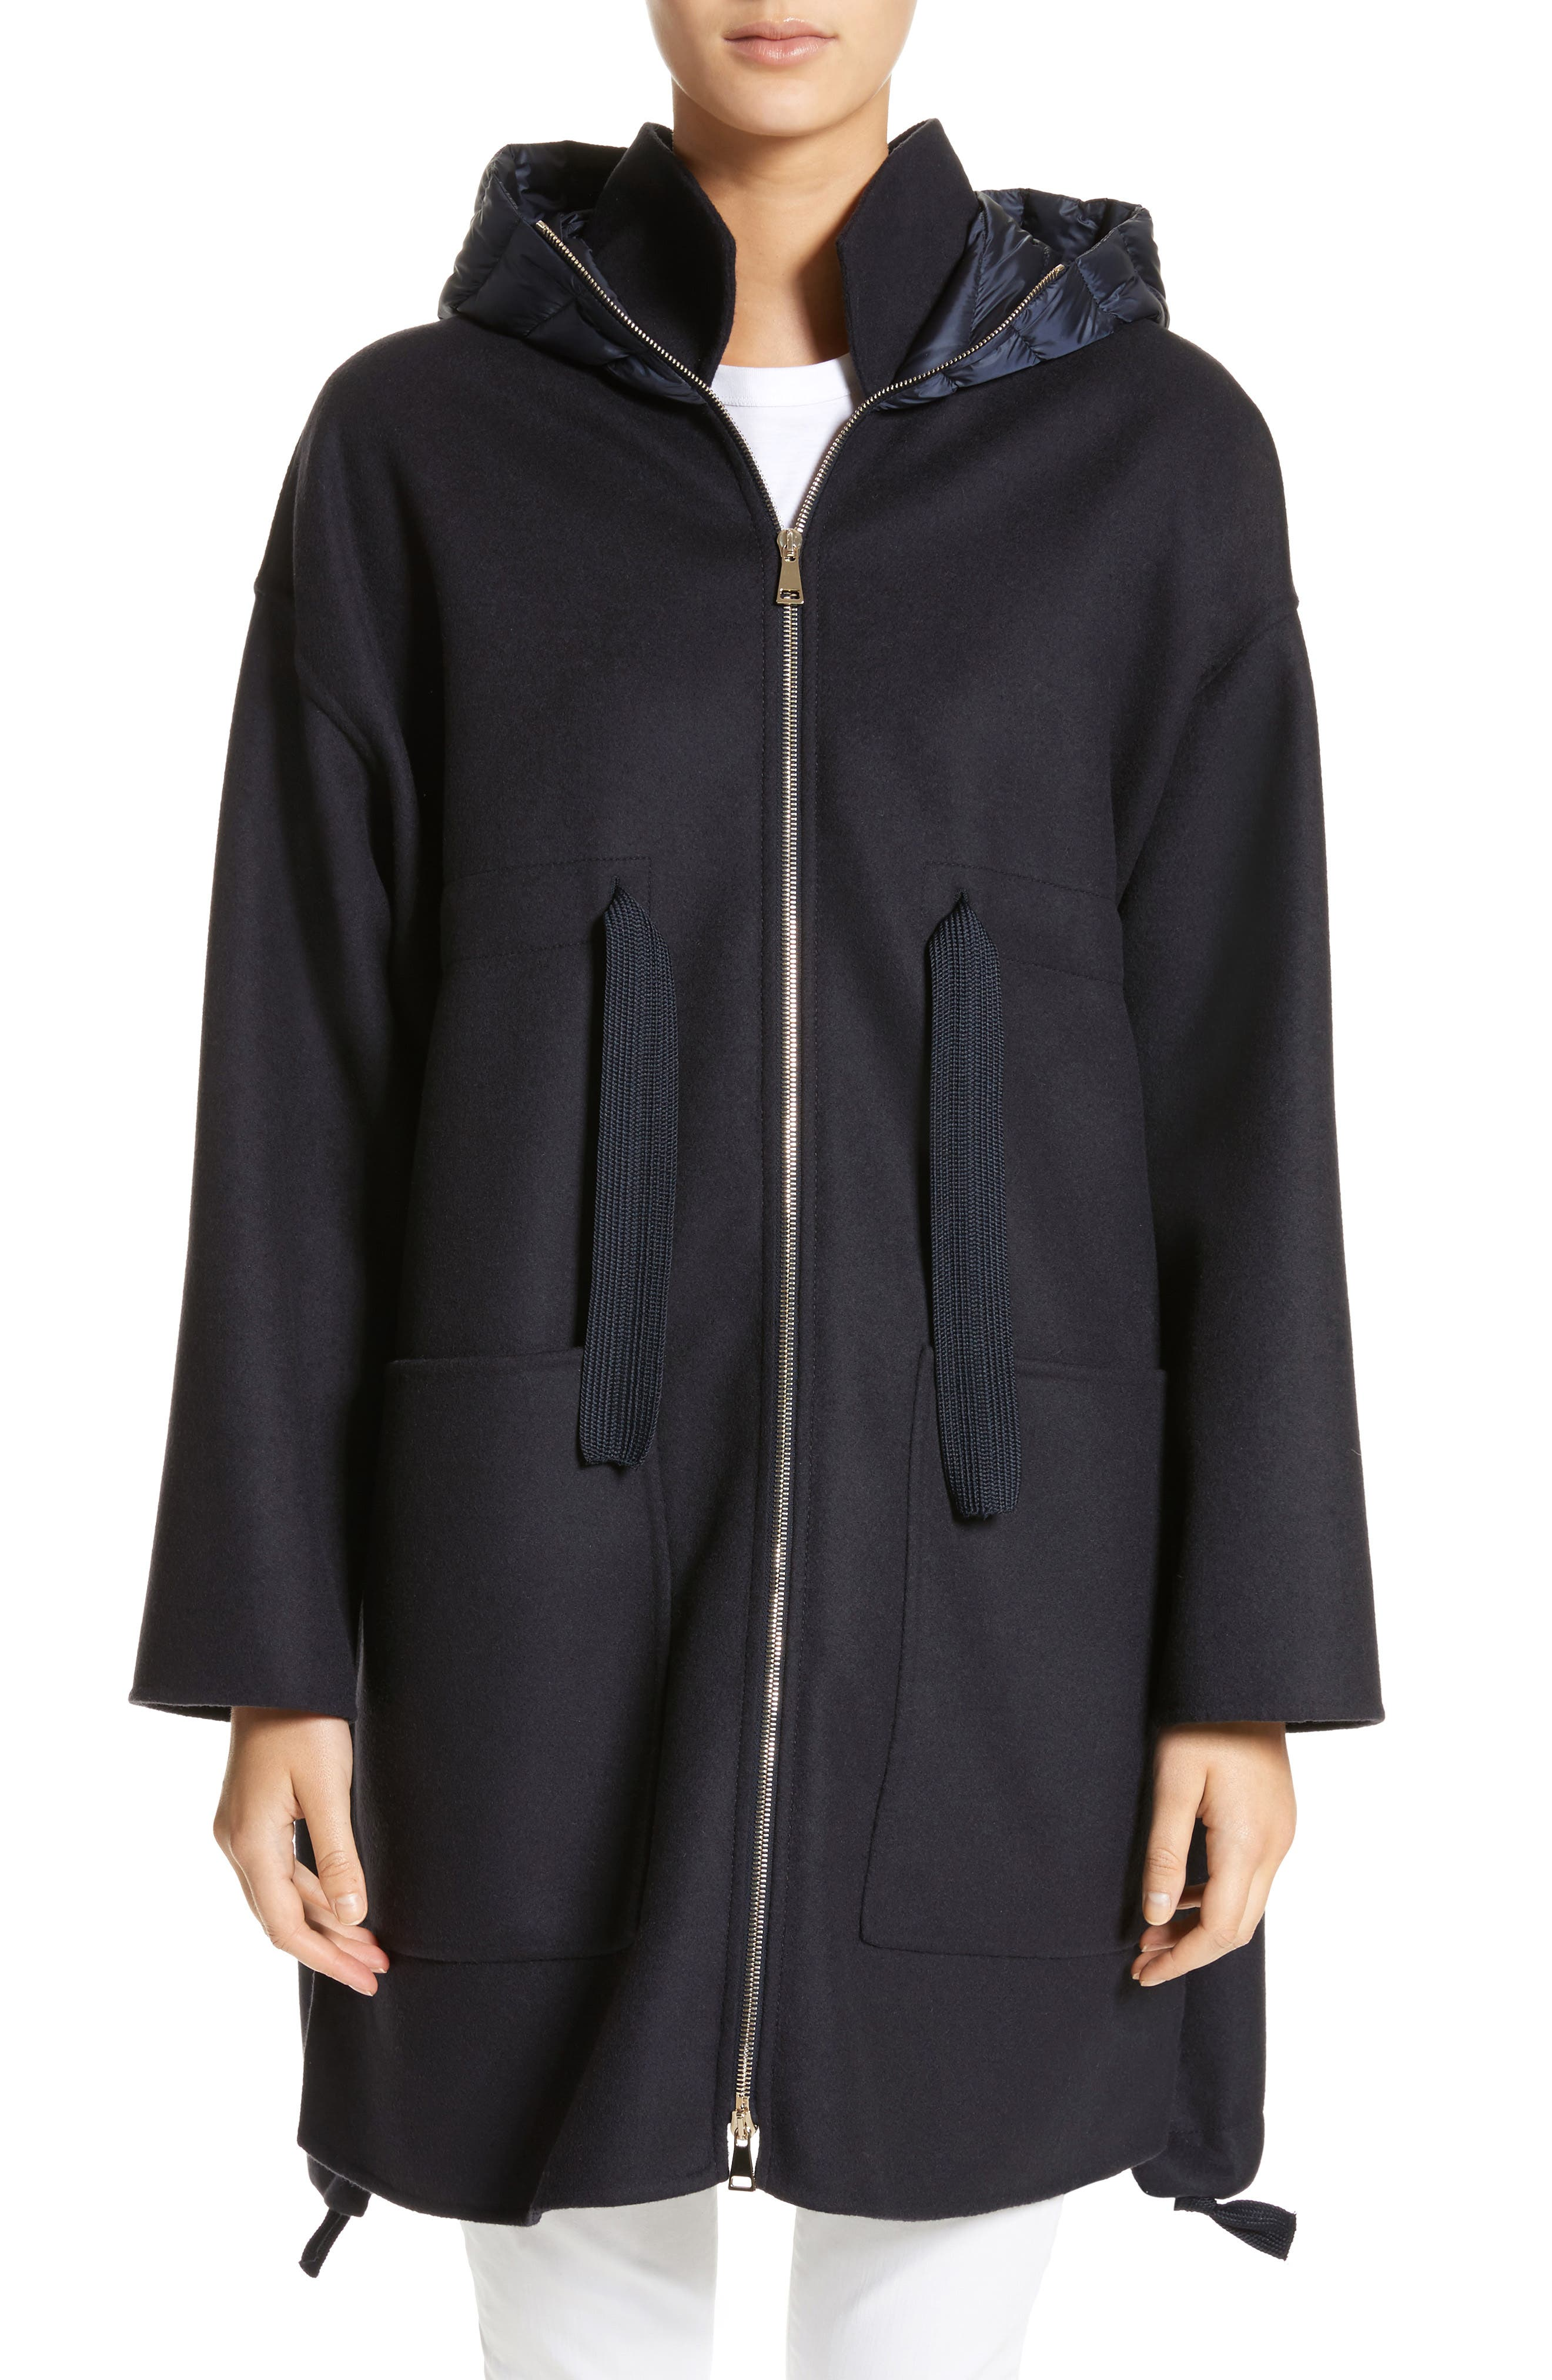 Grenat Wool & Cashmere Hooded Jacket,                             Main thumbnail 1, color,